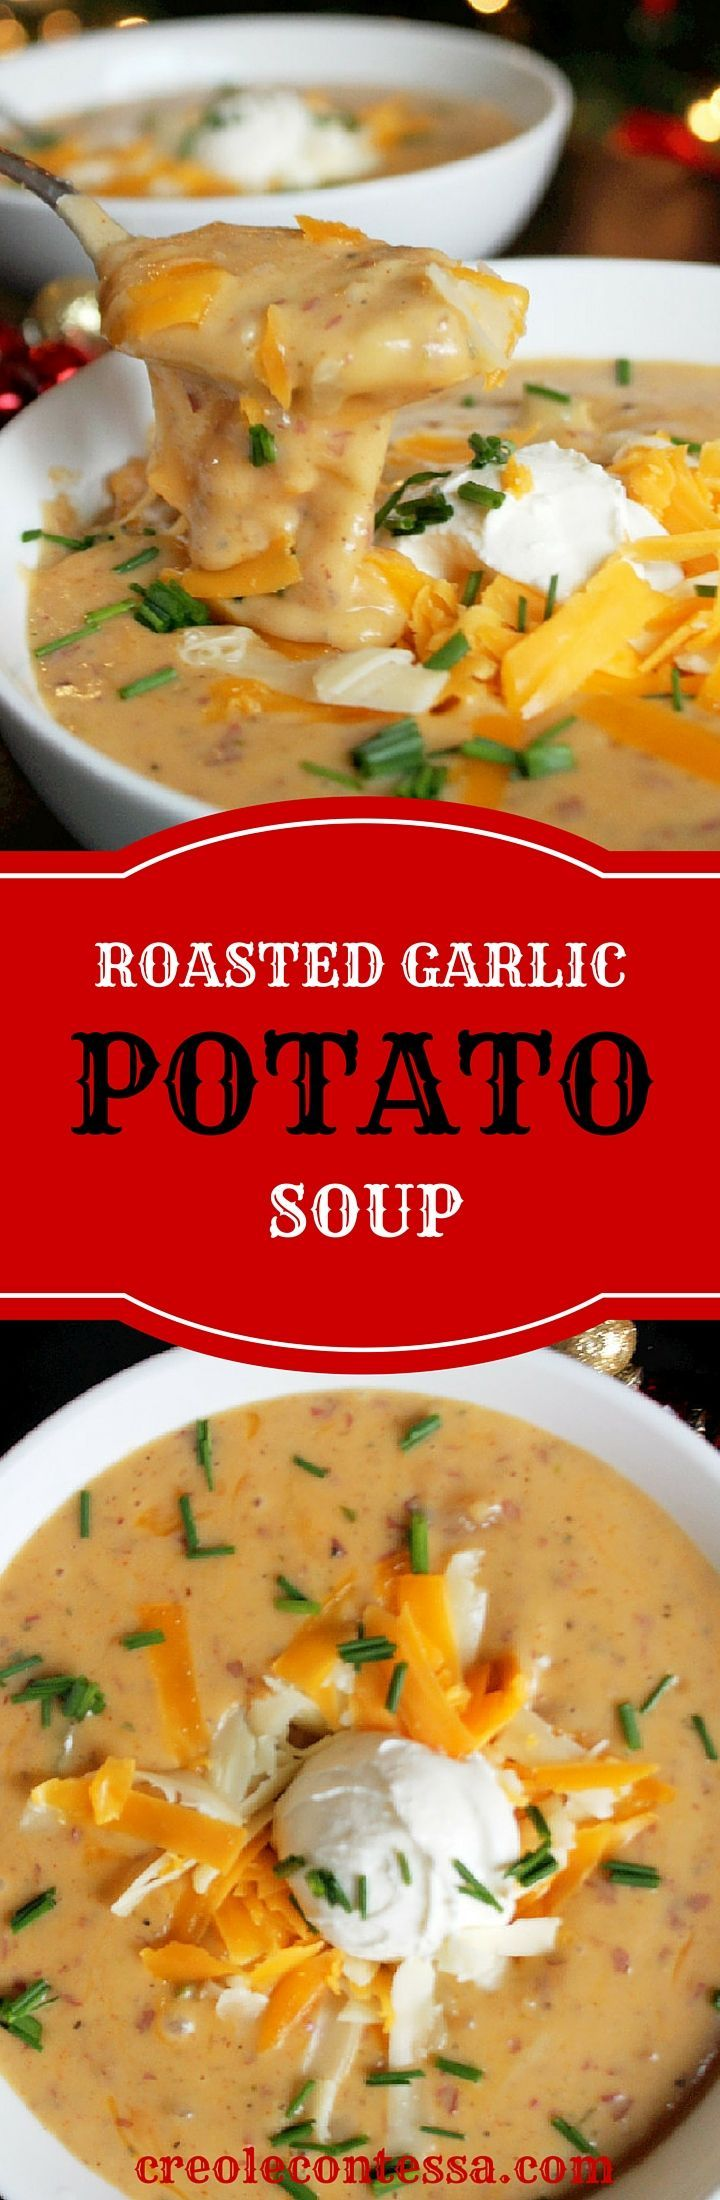 Slow Cooker Roasted Garlic Baked Potato Soup | Creole Contessa | Bloglovin'